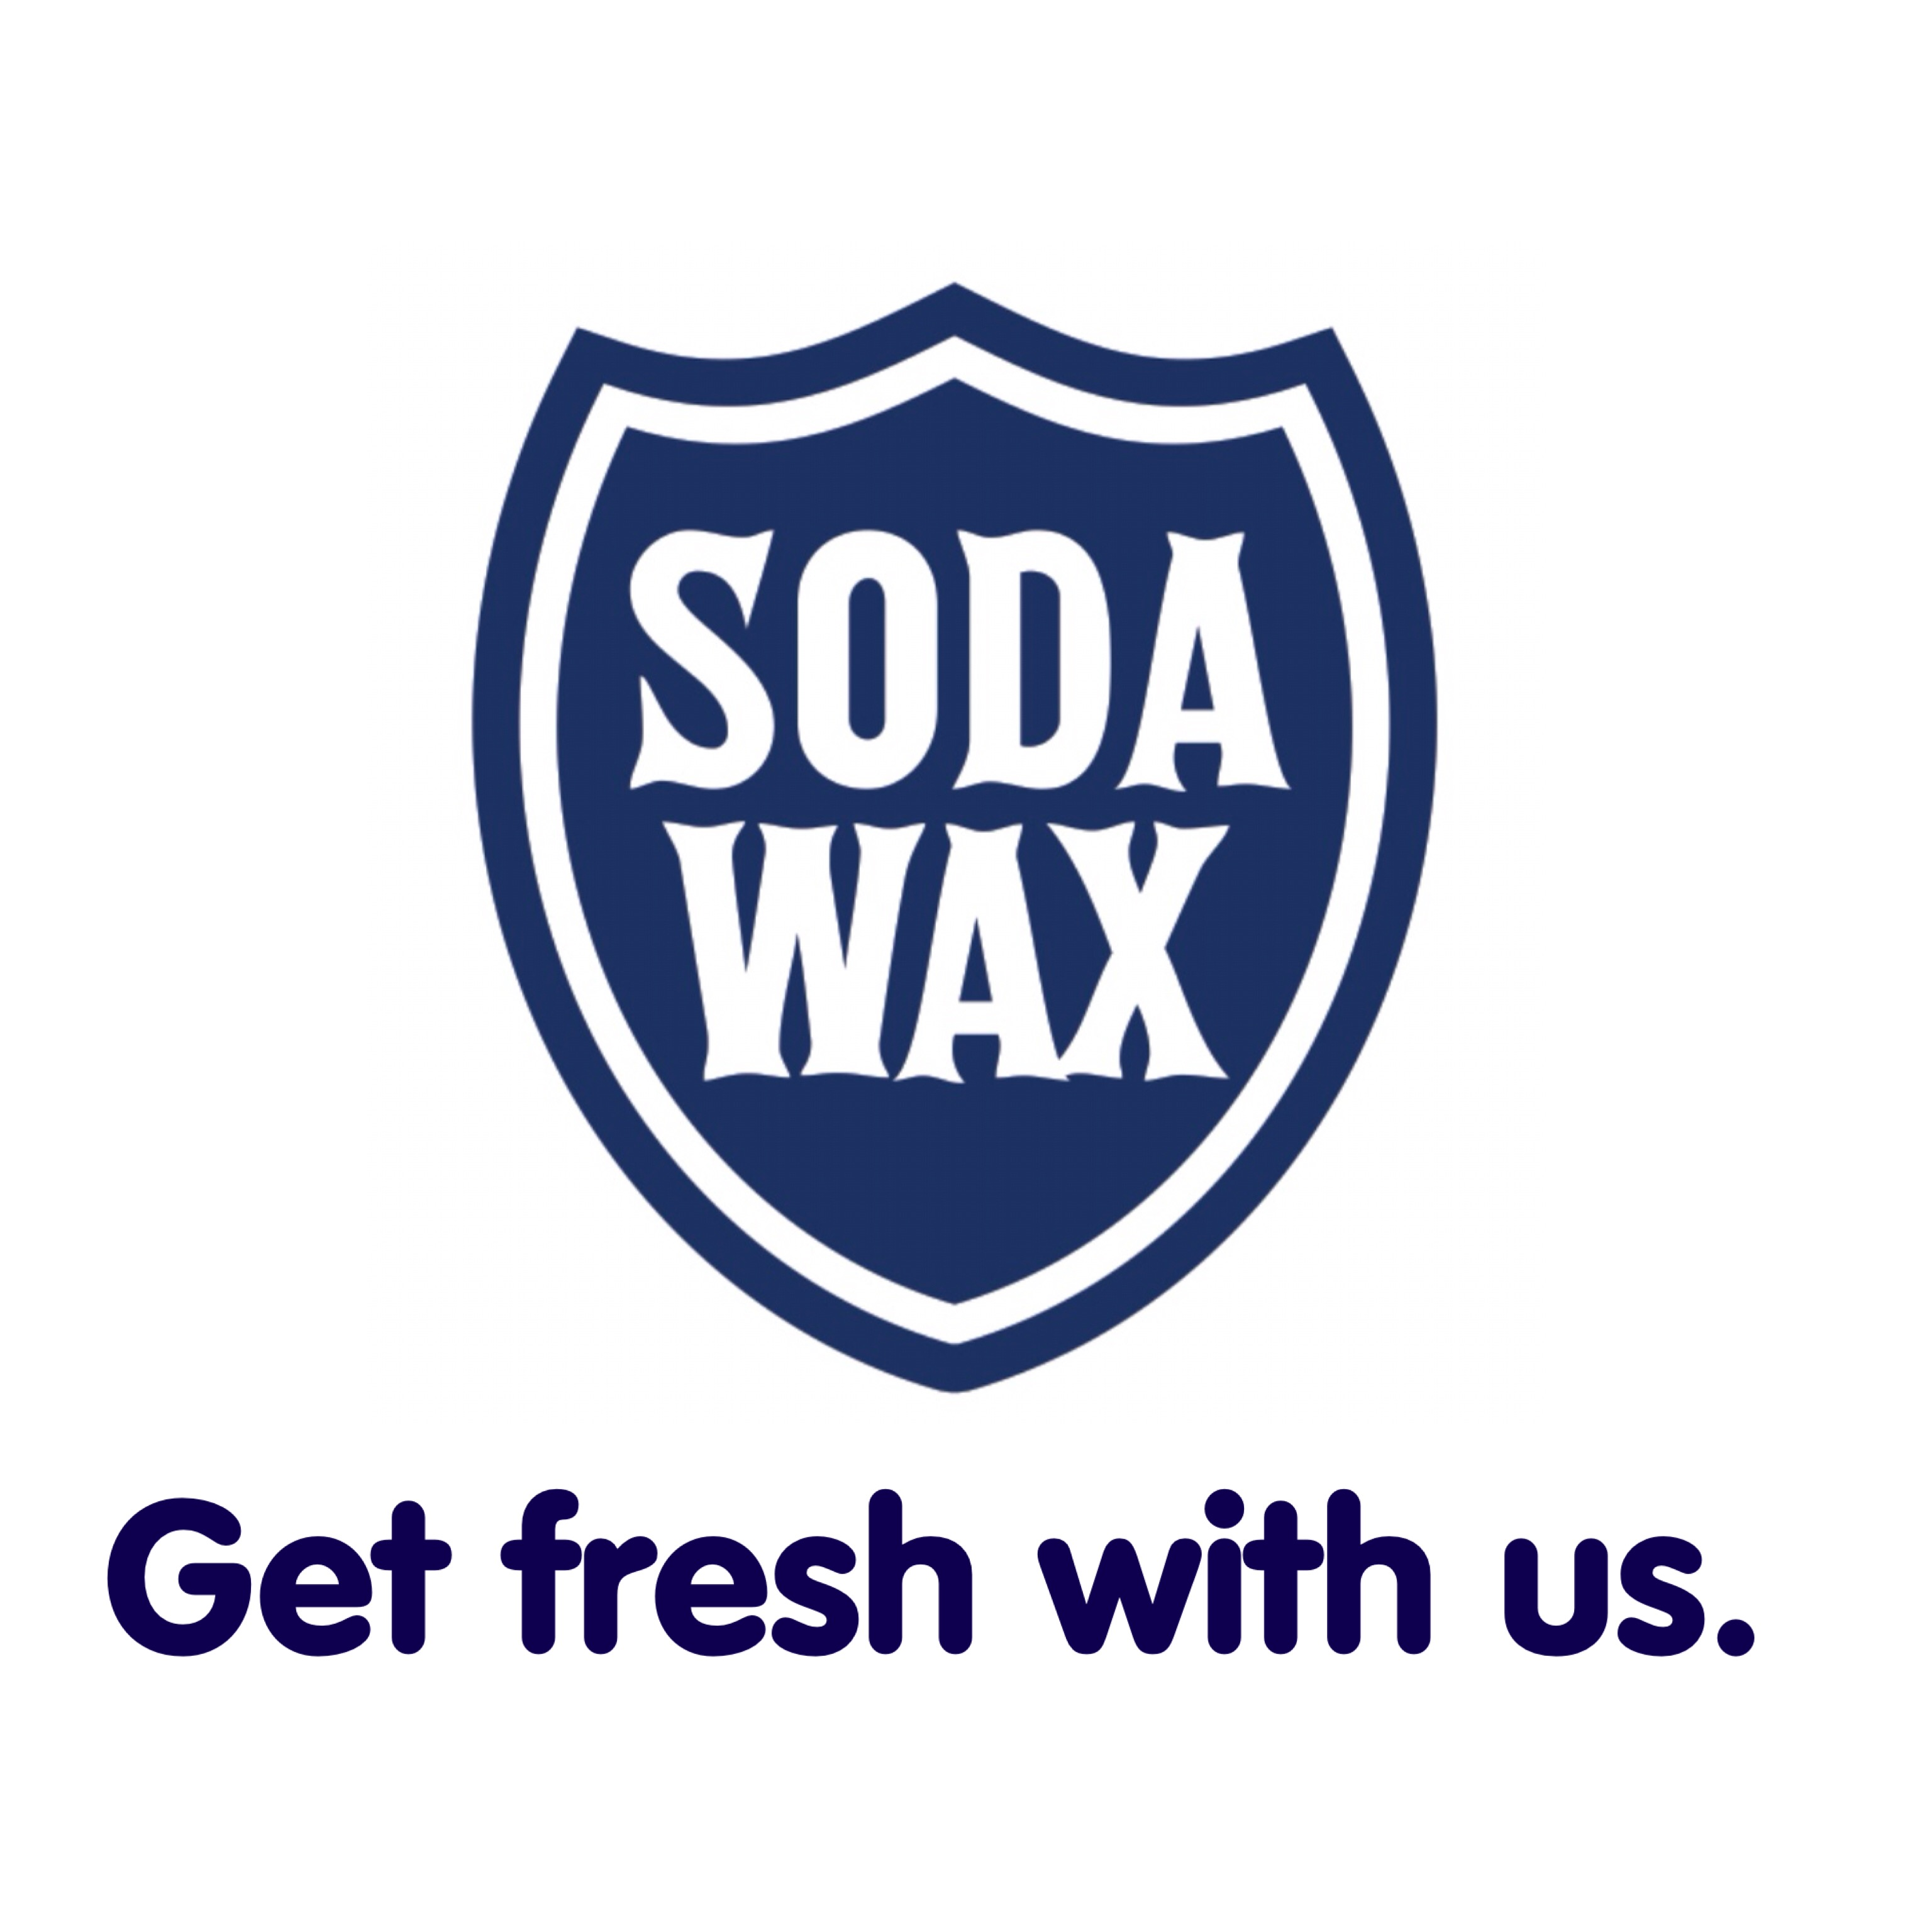 Are you getting fresh with us?